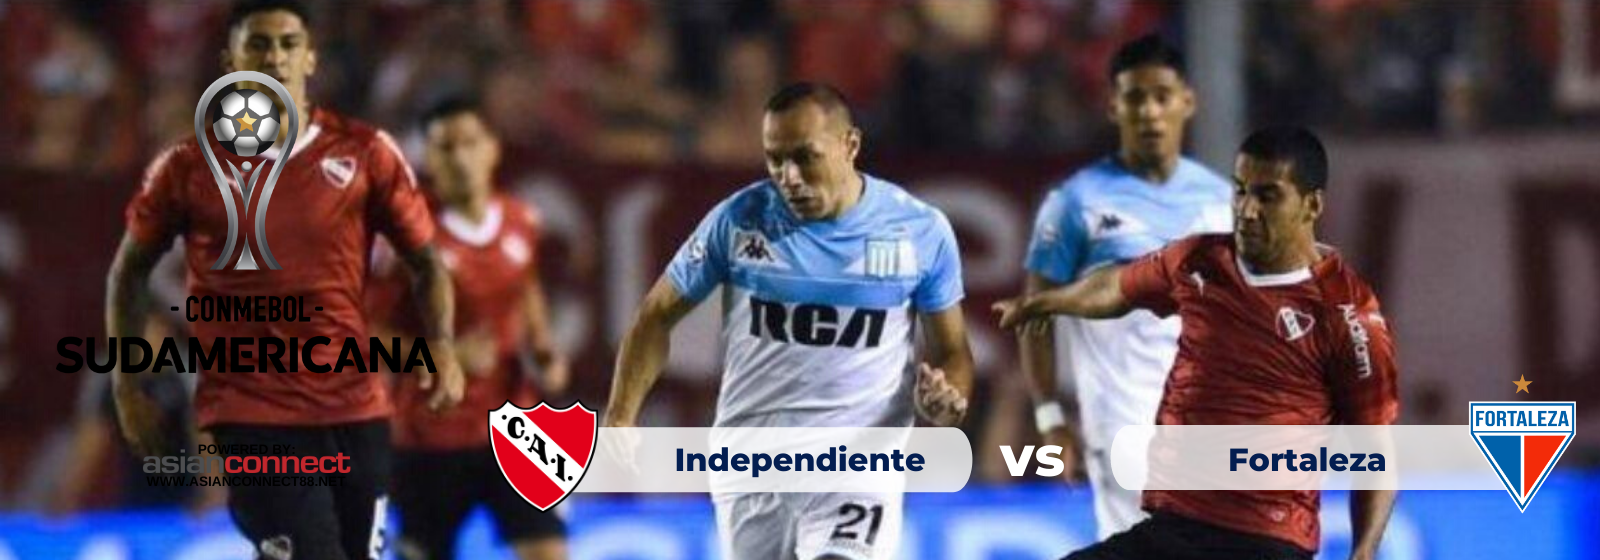 Asianconnect: Independiente (Argentina) vs Fortaleza (Brazil) Odds for February 13, 2020